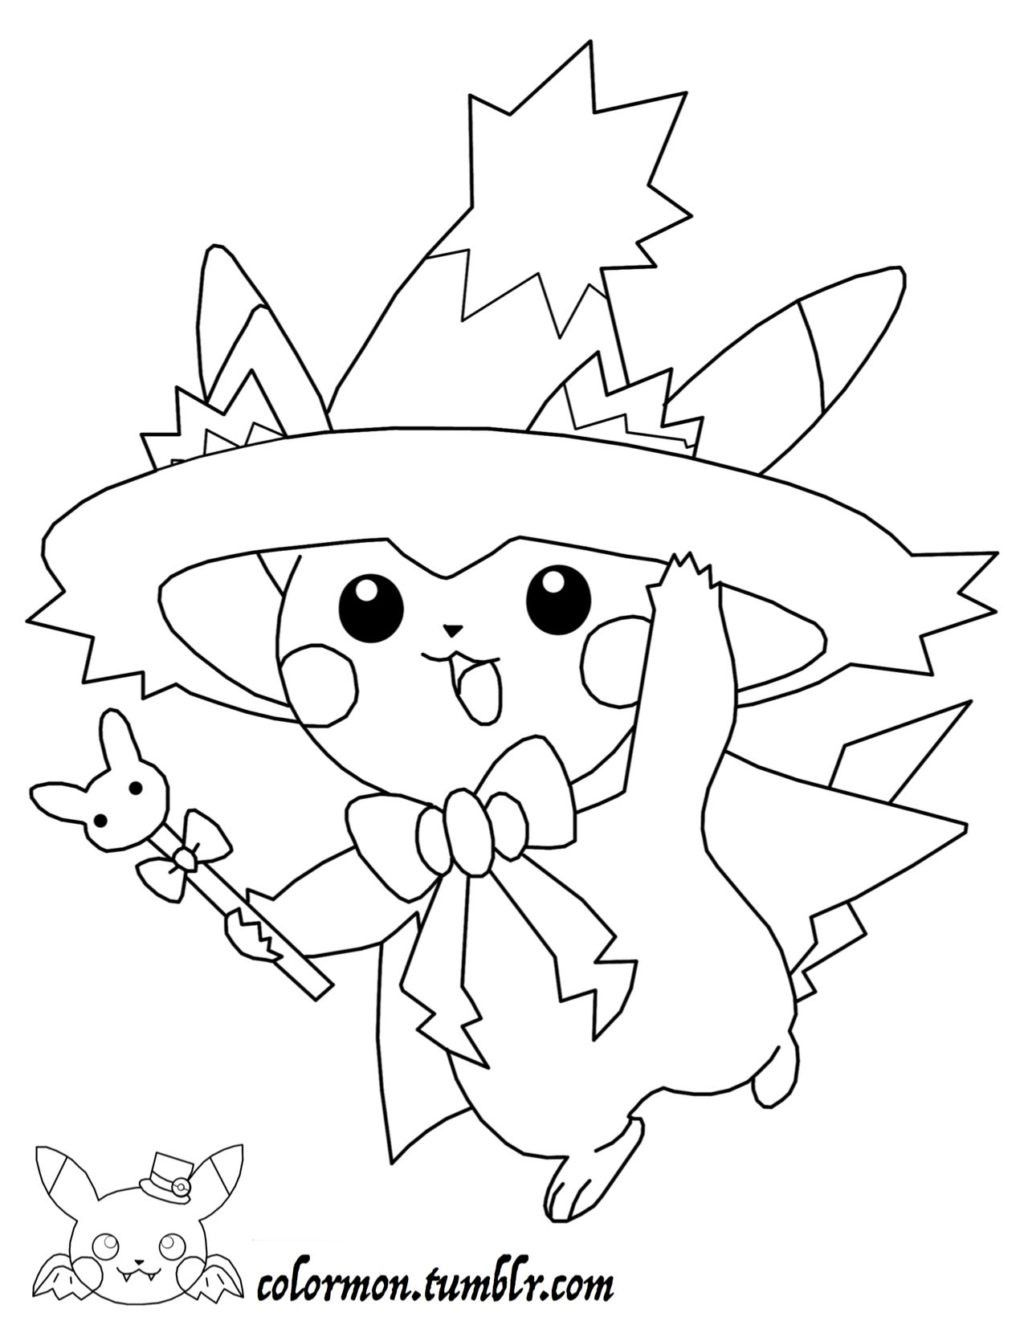 Pikachu Pokemon Coloring Page Youngandtae Com Halloween Coloring Sheets Pokemon Coloring Pages Pikachu Coloring Page